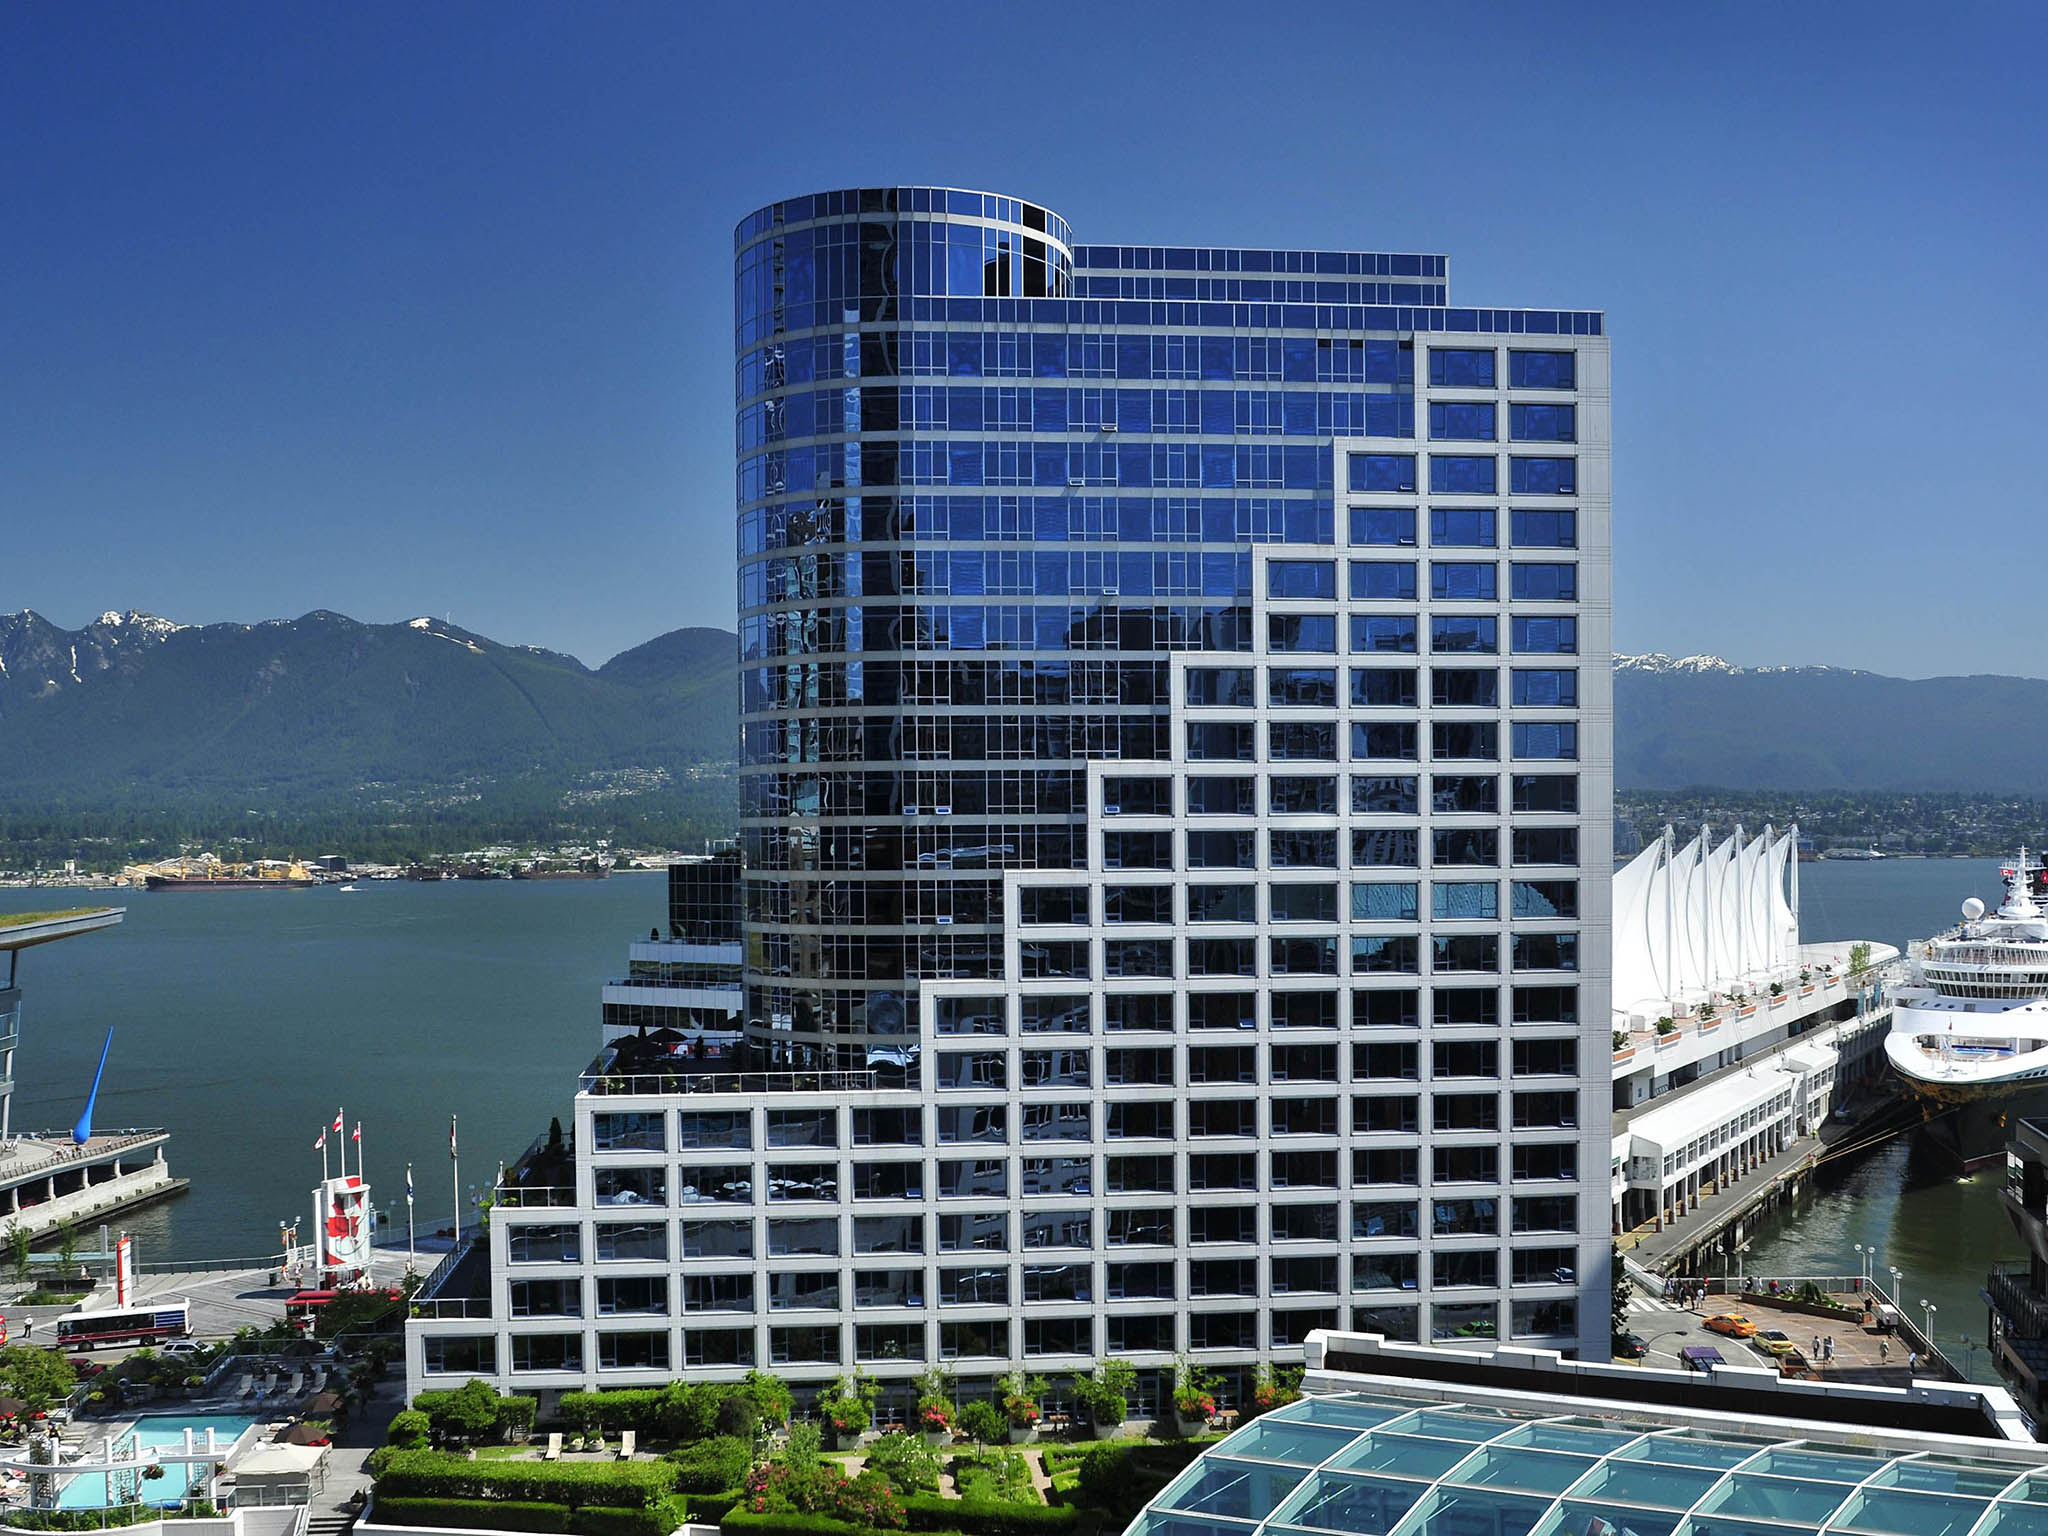 Hotell – Fairmont Waterfront